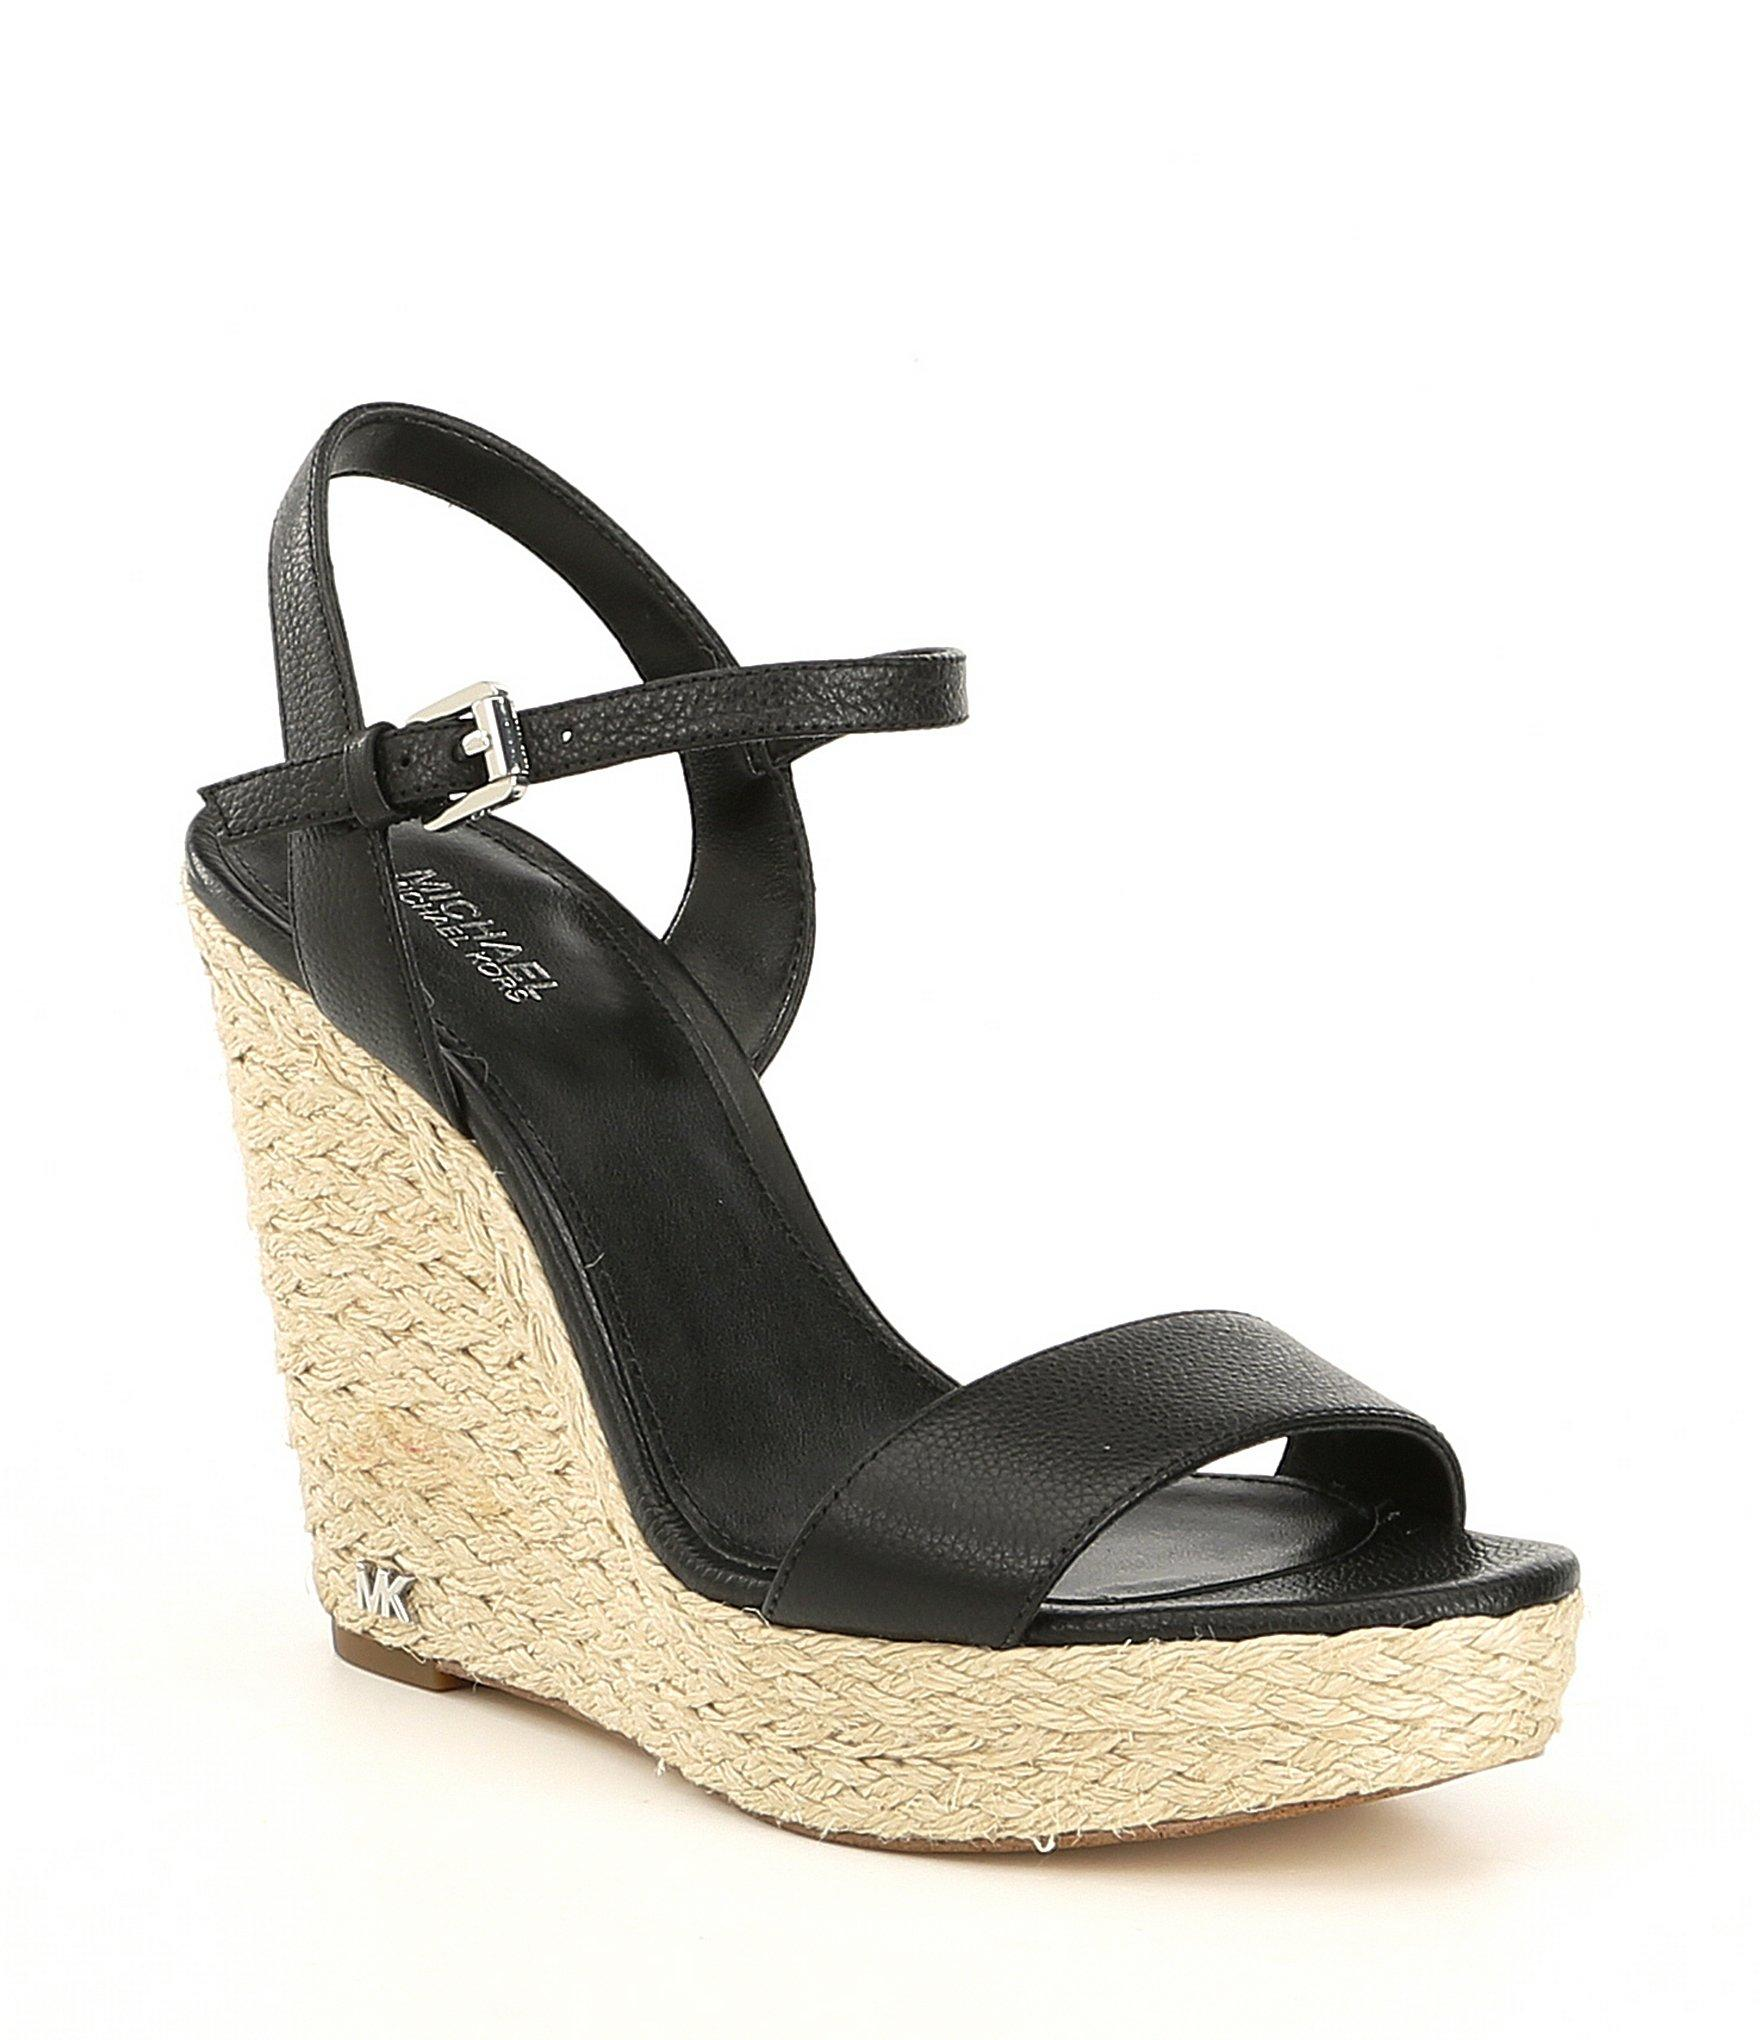 19c59d02b50a Lyst - MICHAEL Michael Kors Jill Espadrille Wedge Sandals in Black